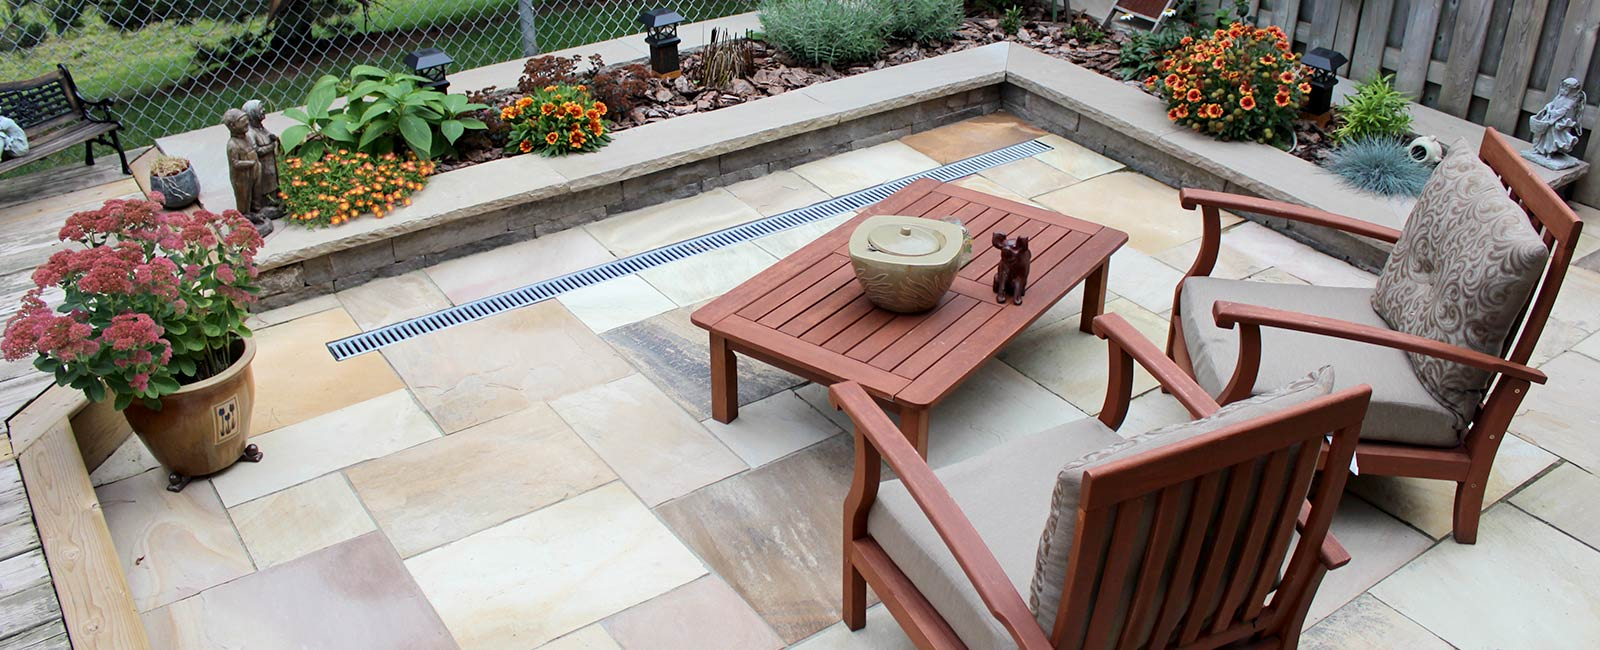 Niagara Outdoor Landscape Construction Solutions That Work